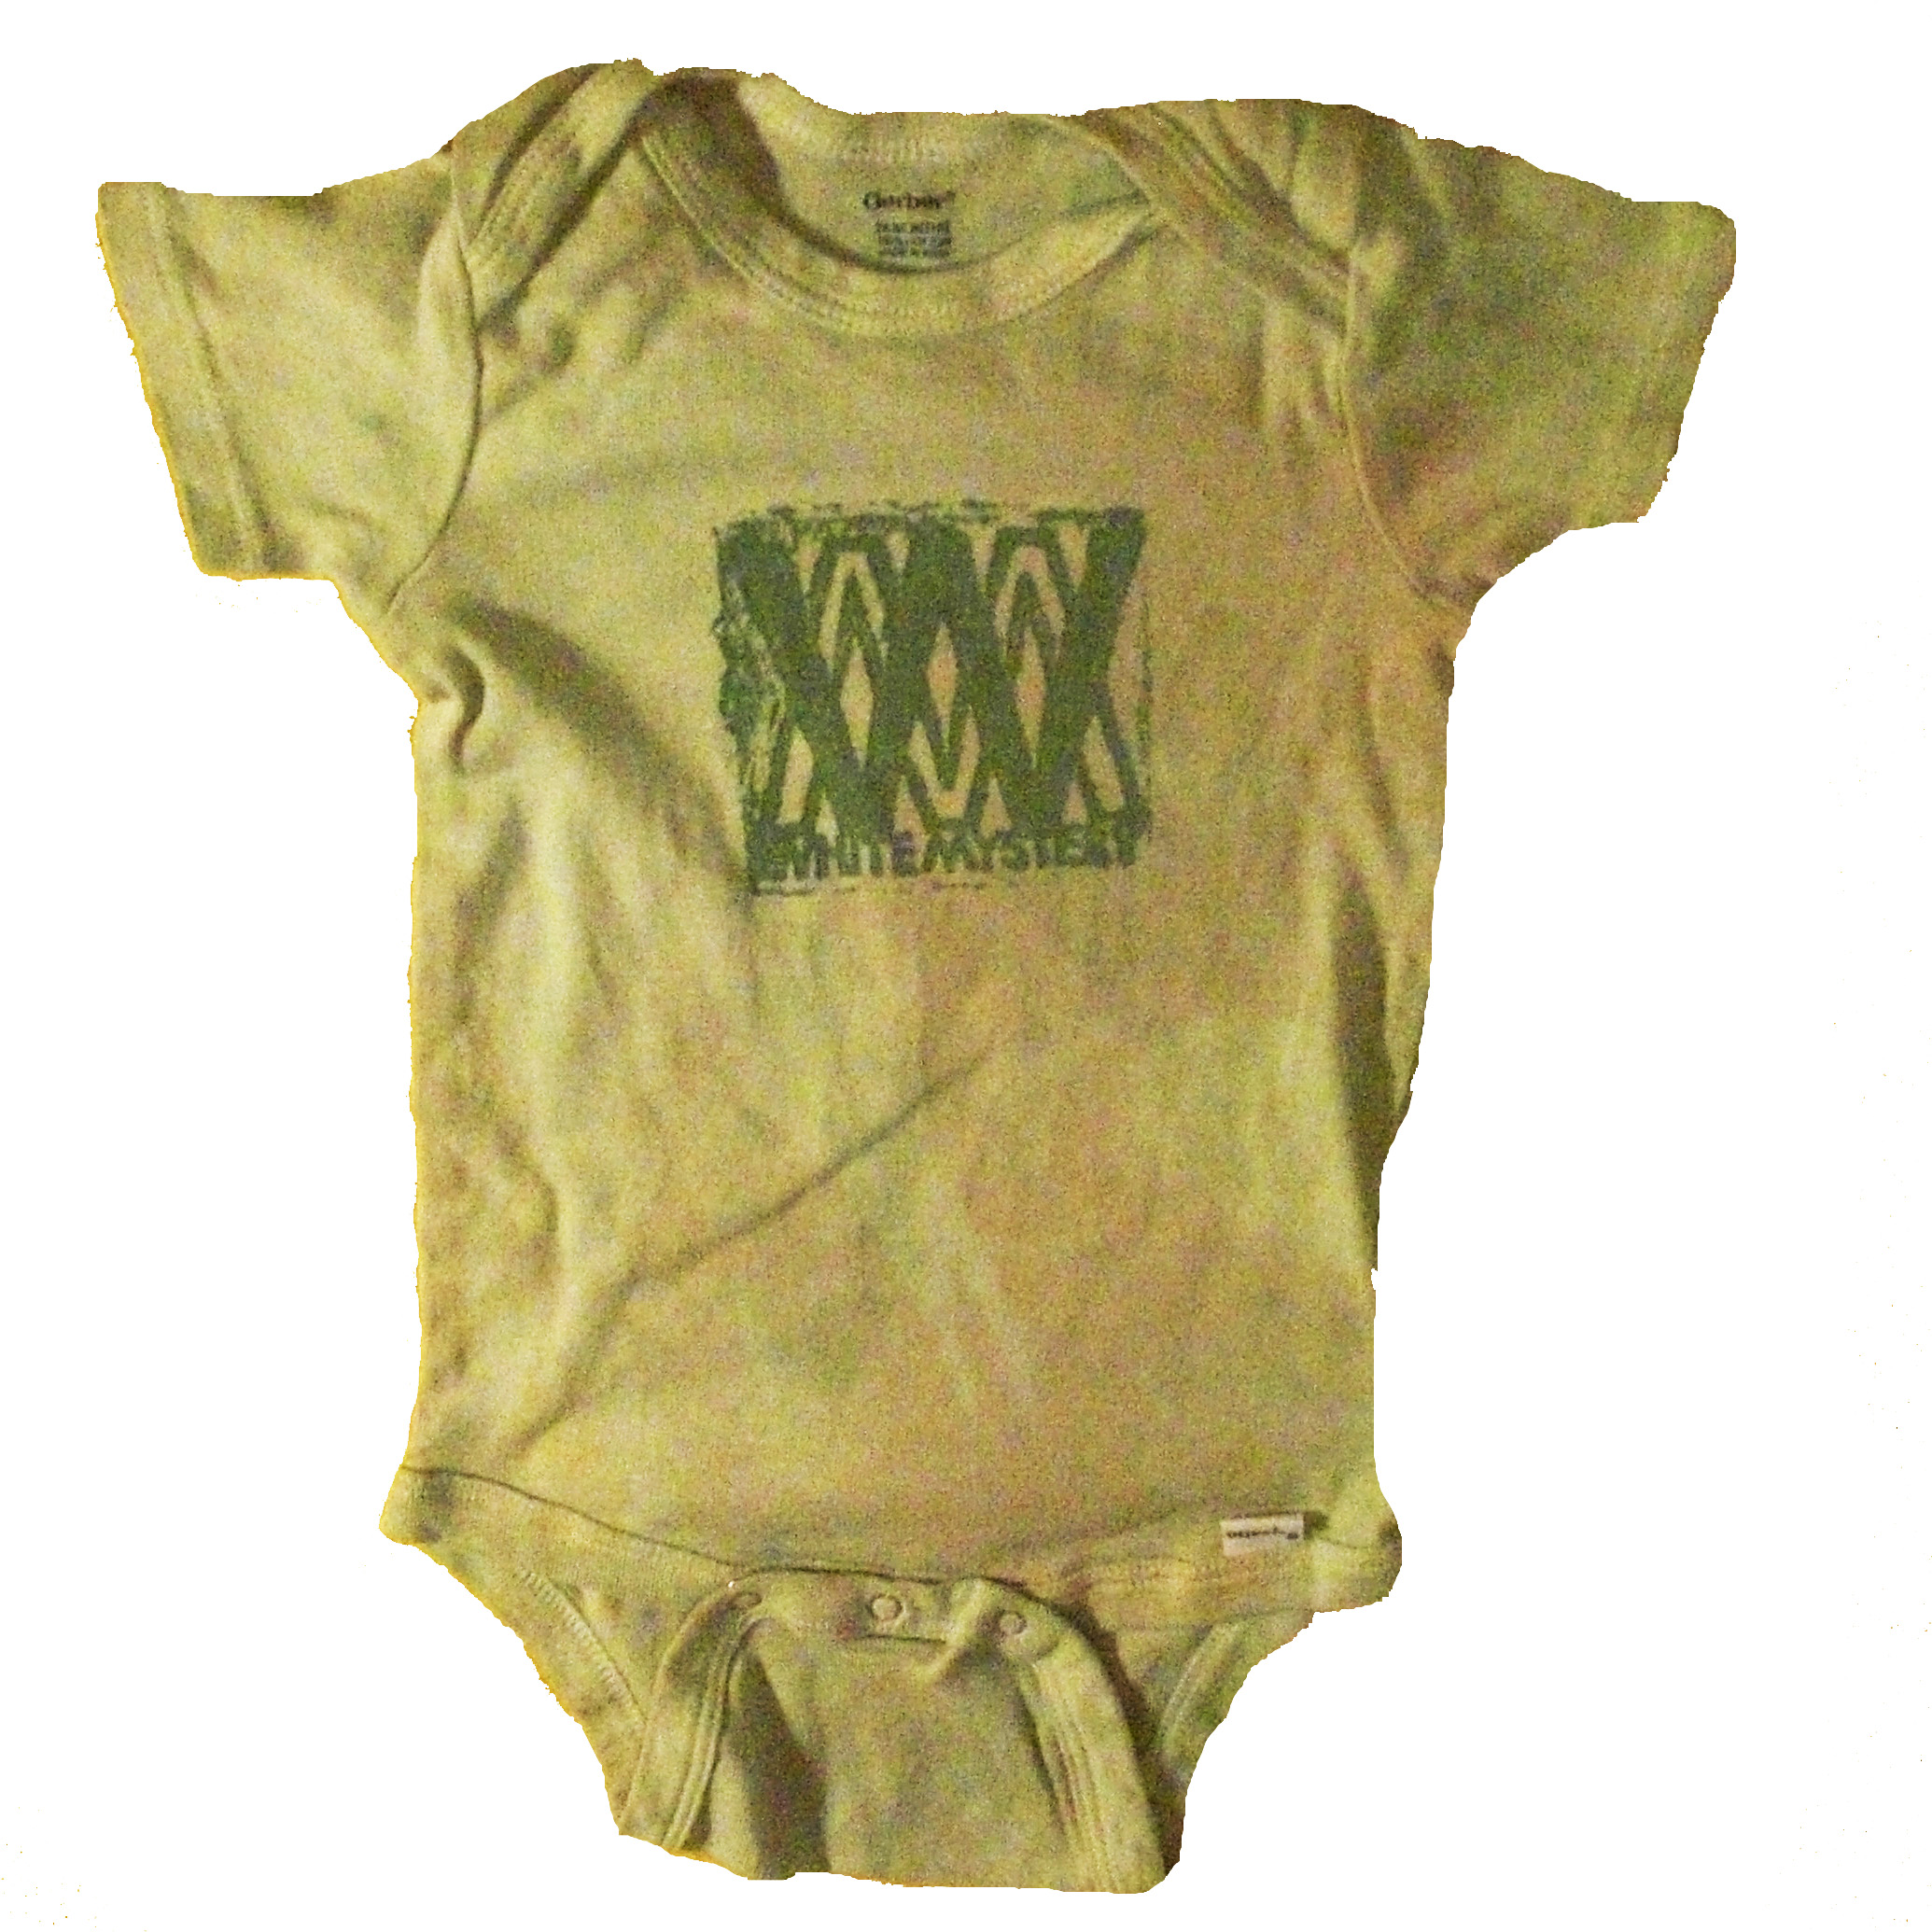 Wm_2011_11_1_merch_baby_onesie_original